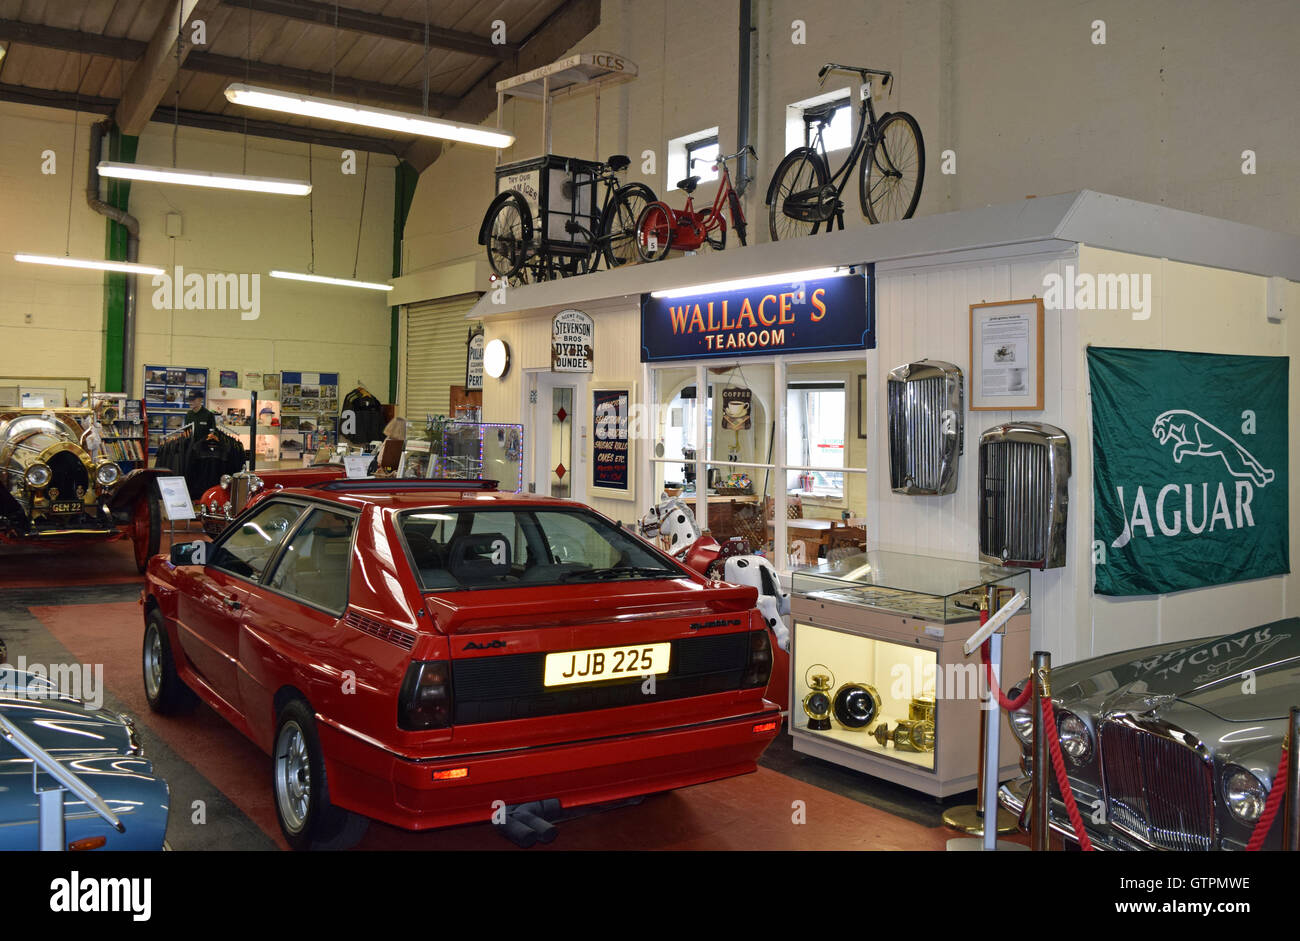 Dundee Museum Of Transport >> Dundee Museum Of Transport Cafe Tearoom Stock Photo